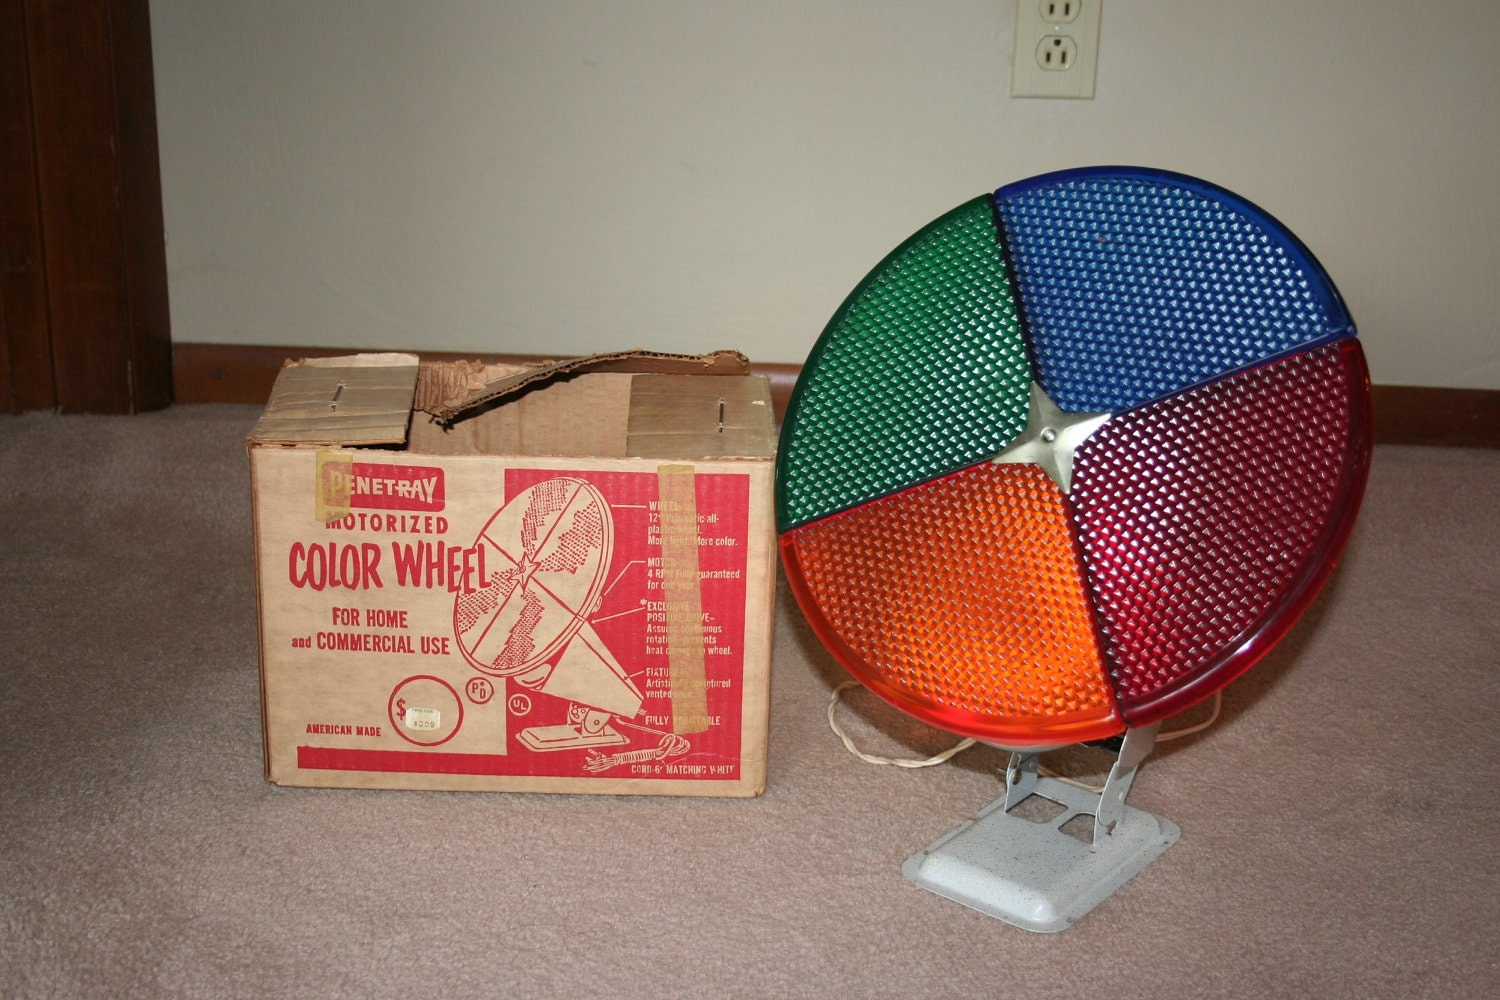 Vintage Penetray Motorized Color Wheel: Christmas Tree Light